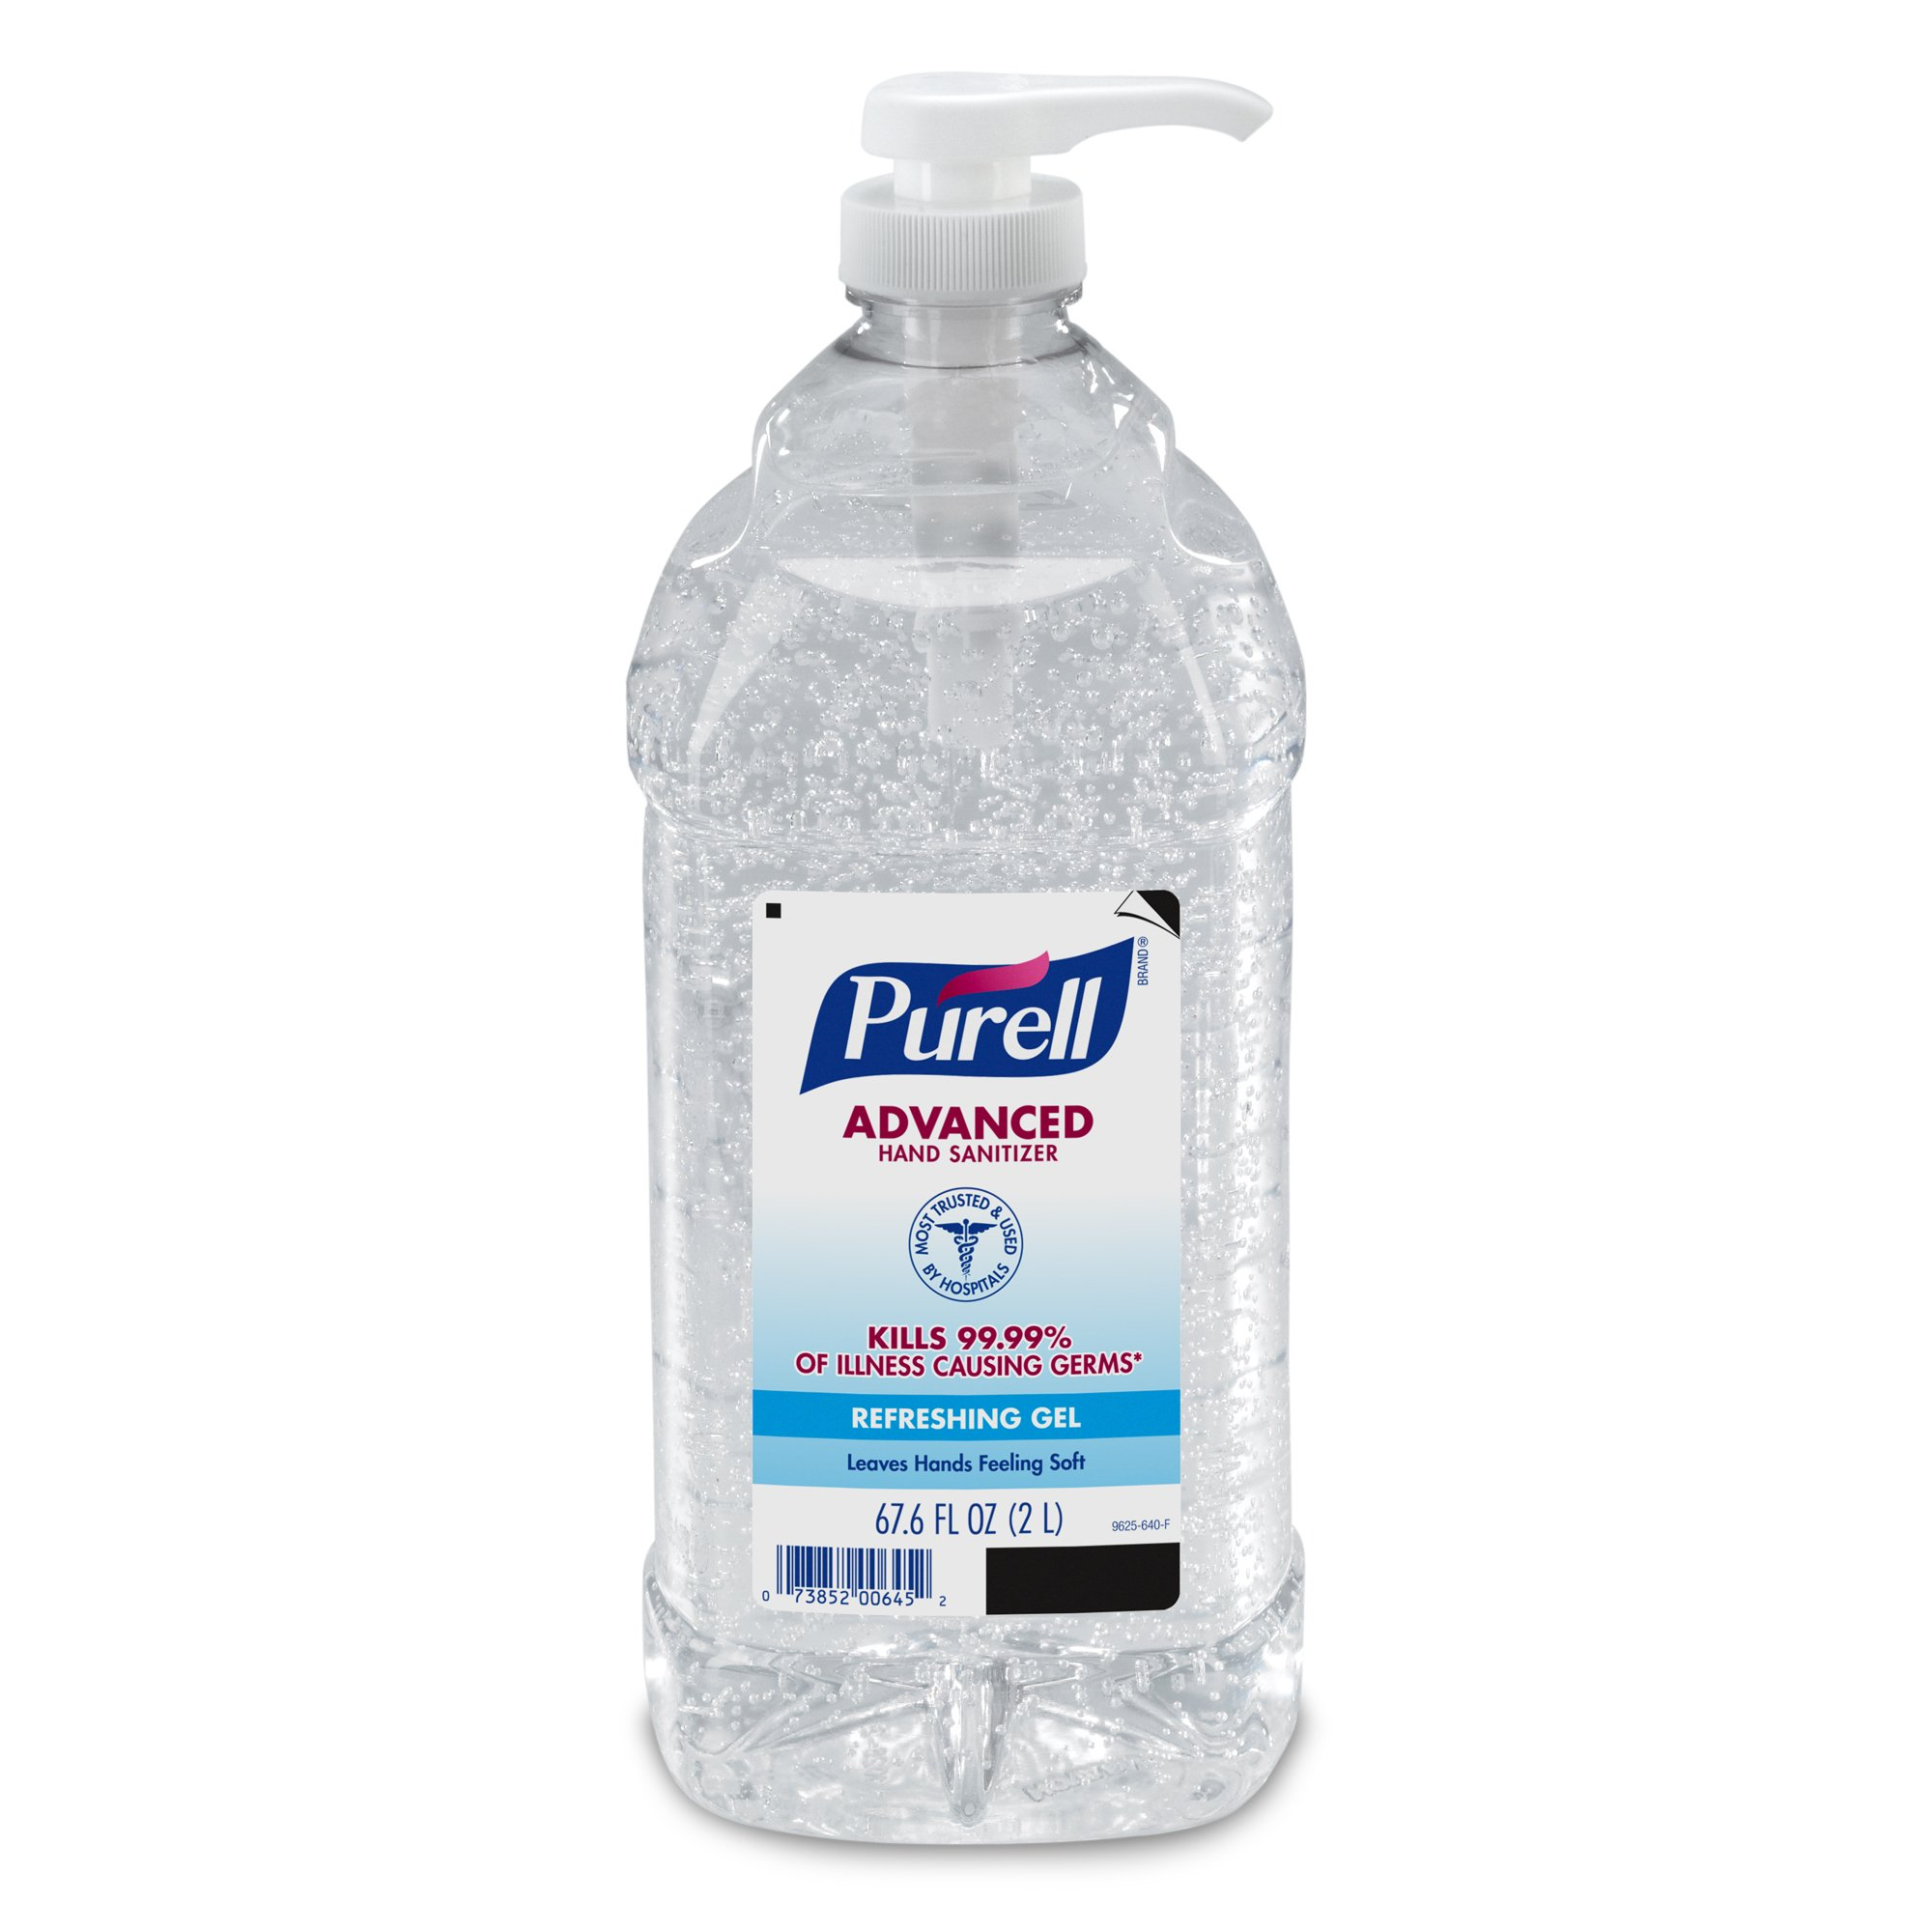 PURELL Advanced Hand Sanitizer Refreshing Gel for Workplaces, Clean Scent, 2 Liter pump bottle (Pack of 1) - 9625-04-EC by Purell